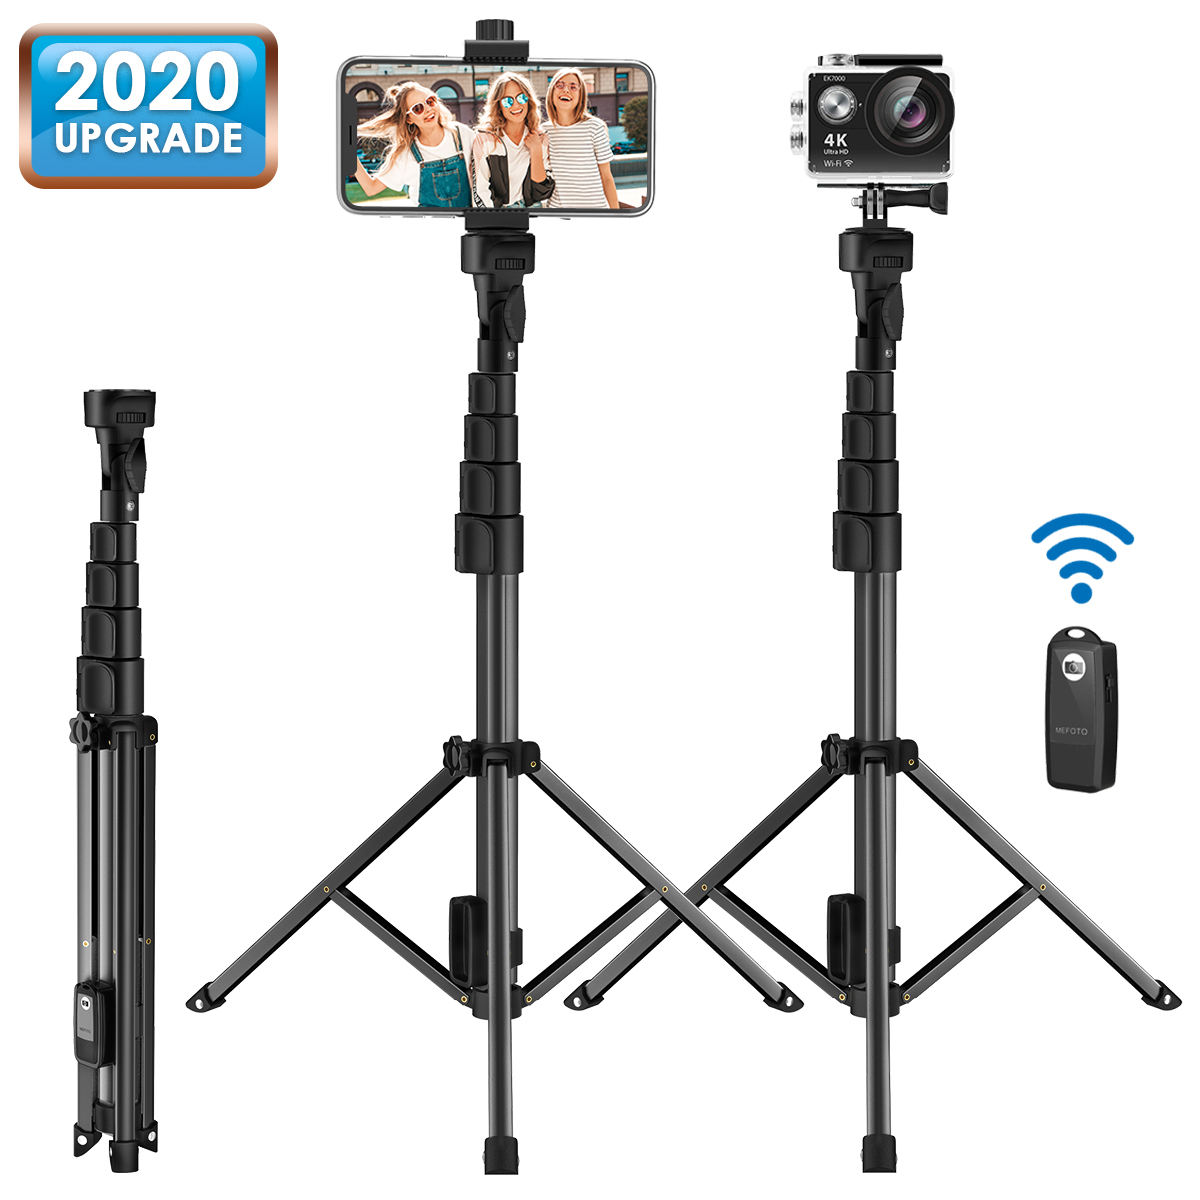 2 in 1 Wireless Mini Extendable Monopod Universal bluetooth Selfie Stick Tripod For iPhone Samsung smartphone camera